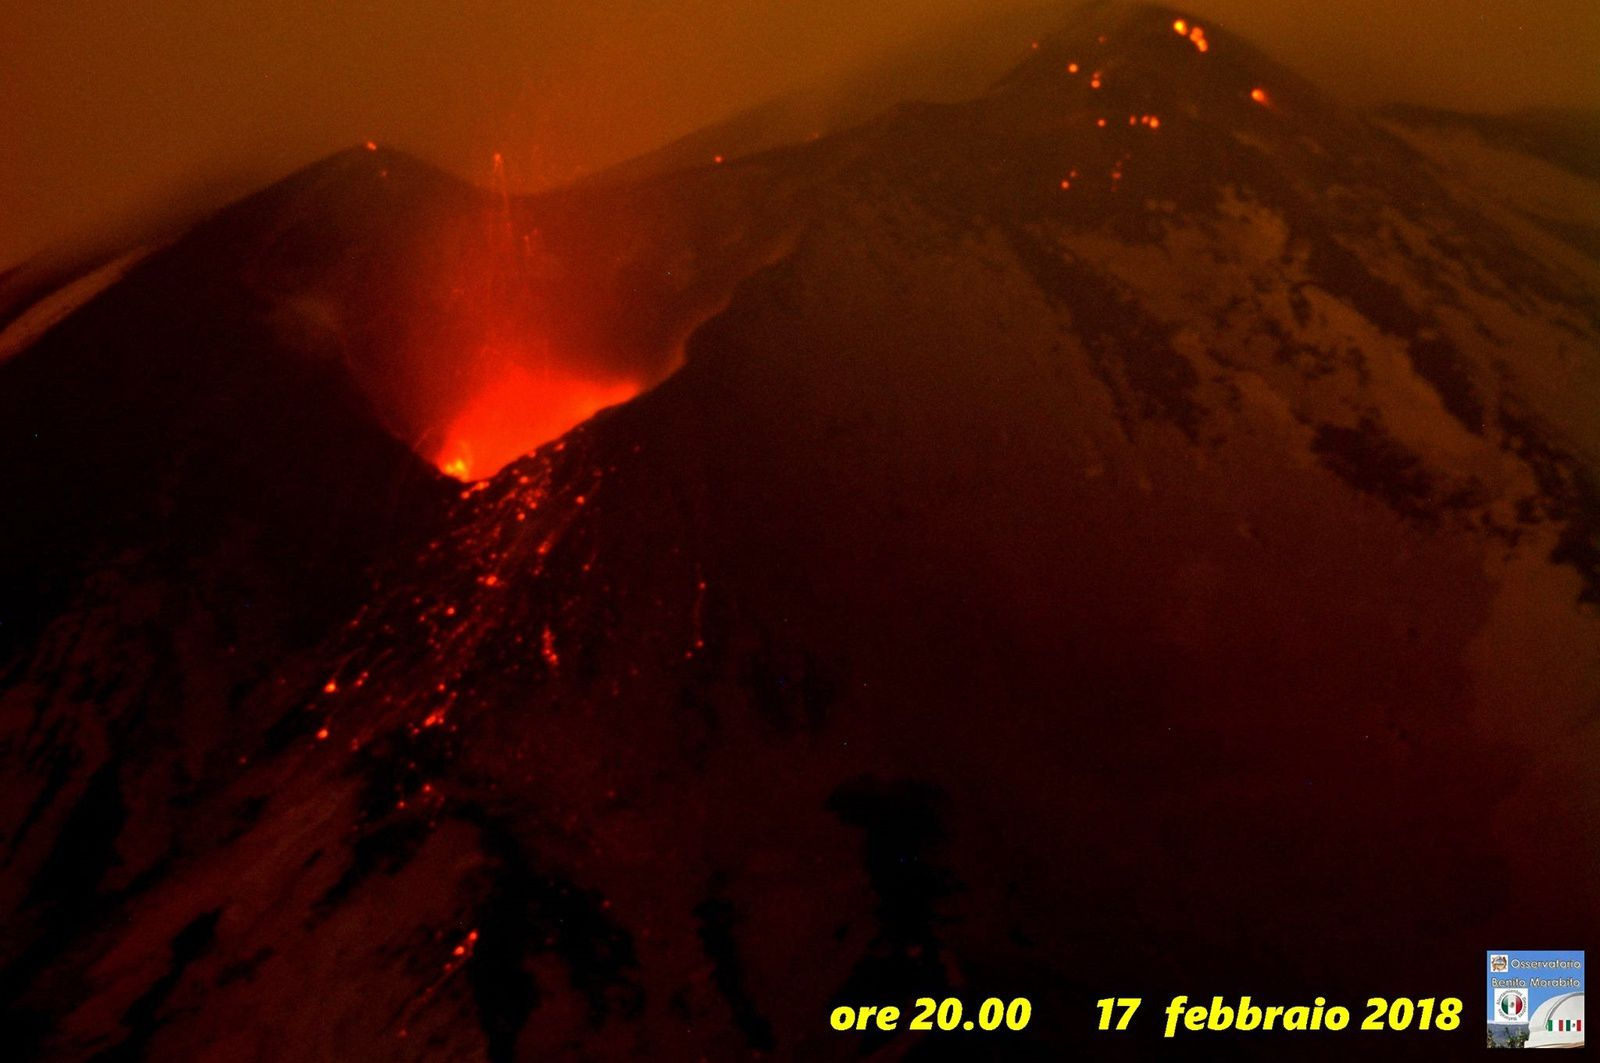 Etna - incandescence et projection de matériaux incandescents  - photo  B.Morabito 17.02.2018 / 20h